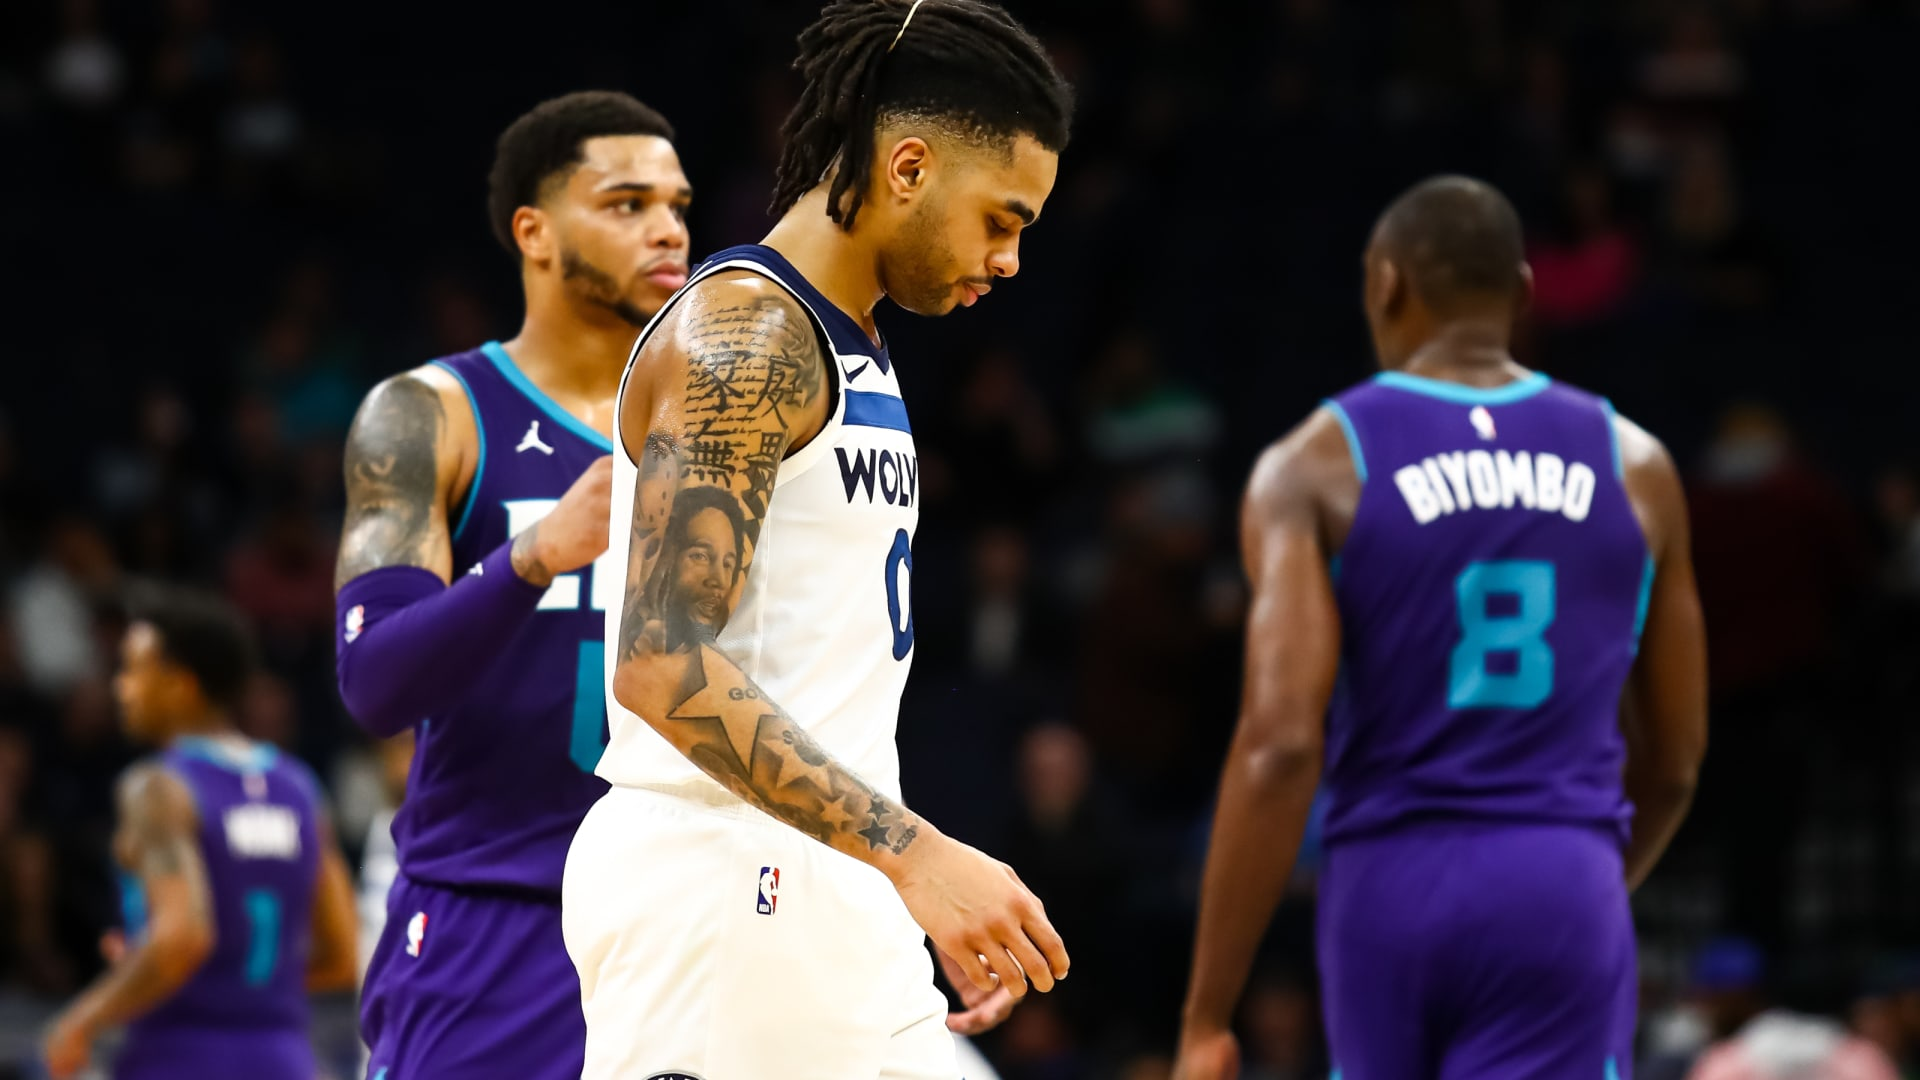 Statistically Speaking: Two Losses For The Minnesota Timberwolves